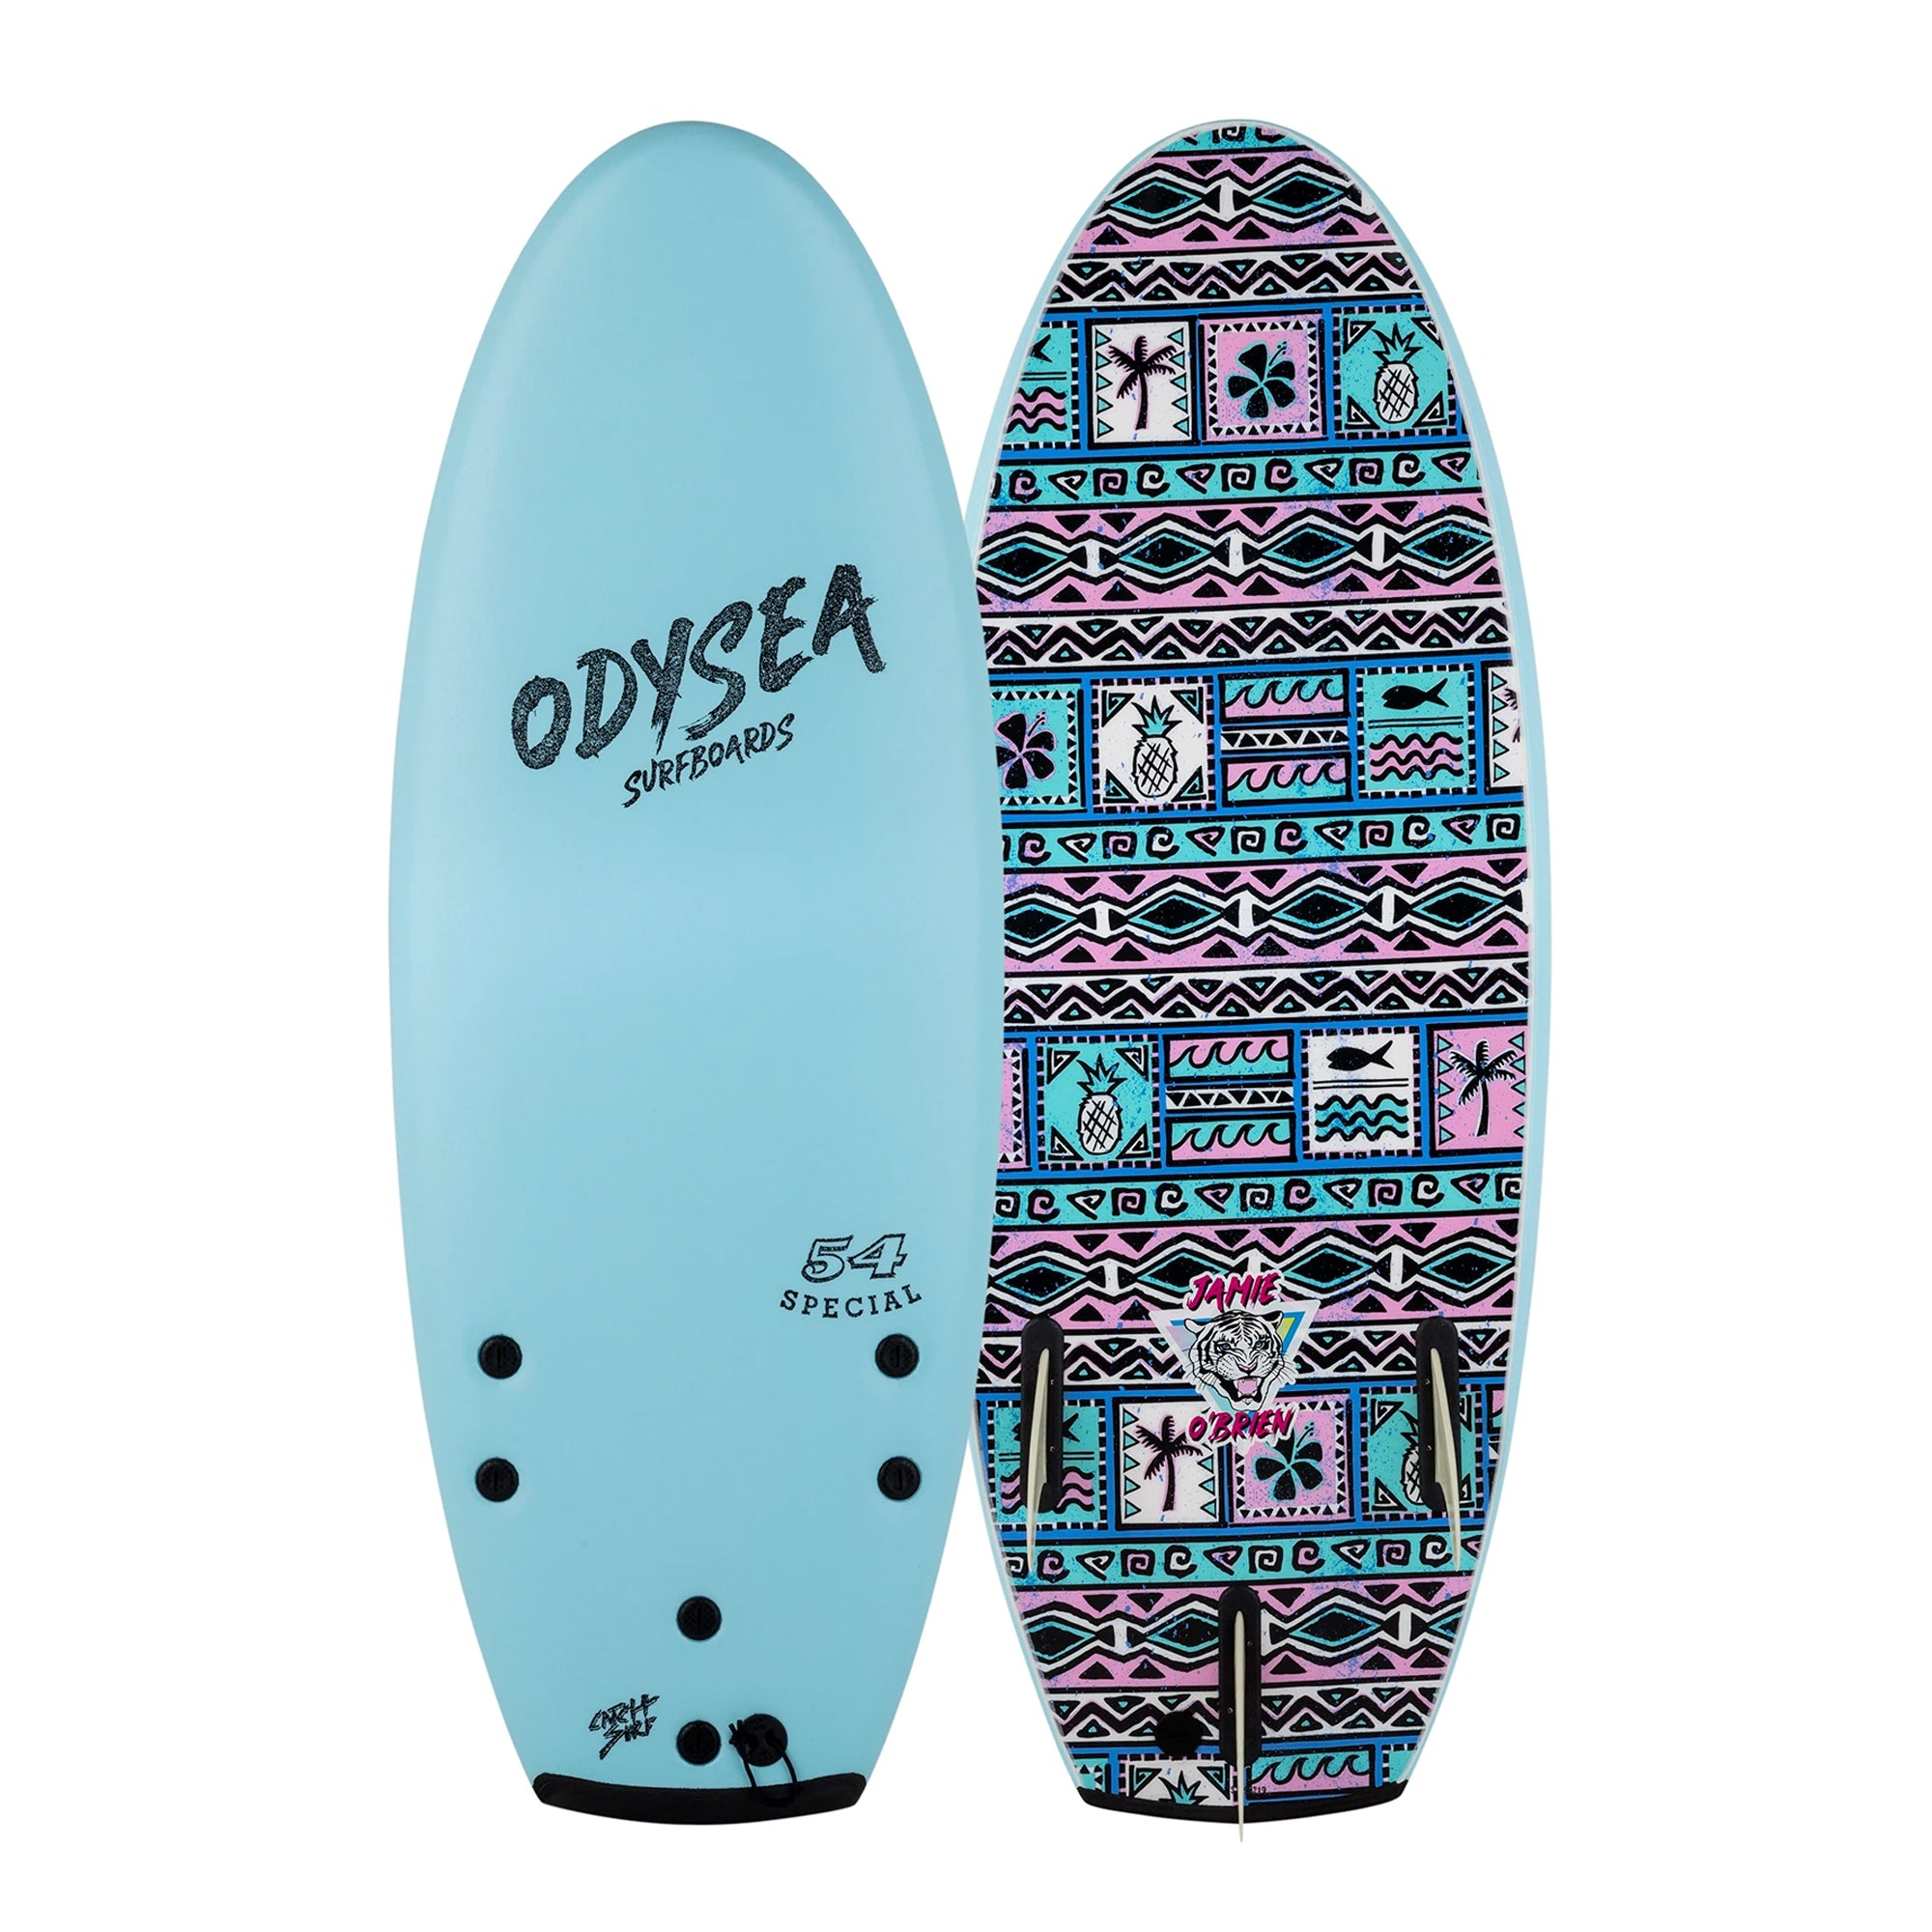 Catch Surf Odysea Special 54 JOB Pro Thruster Soft Surfboard